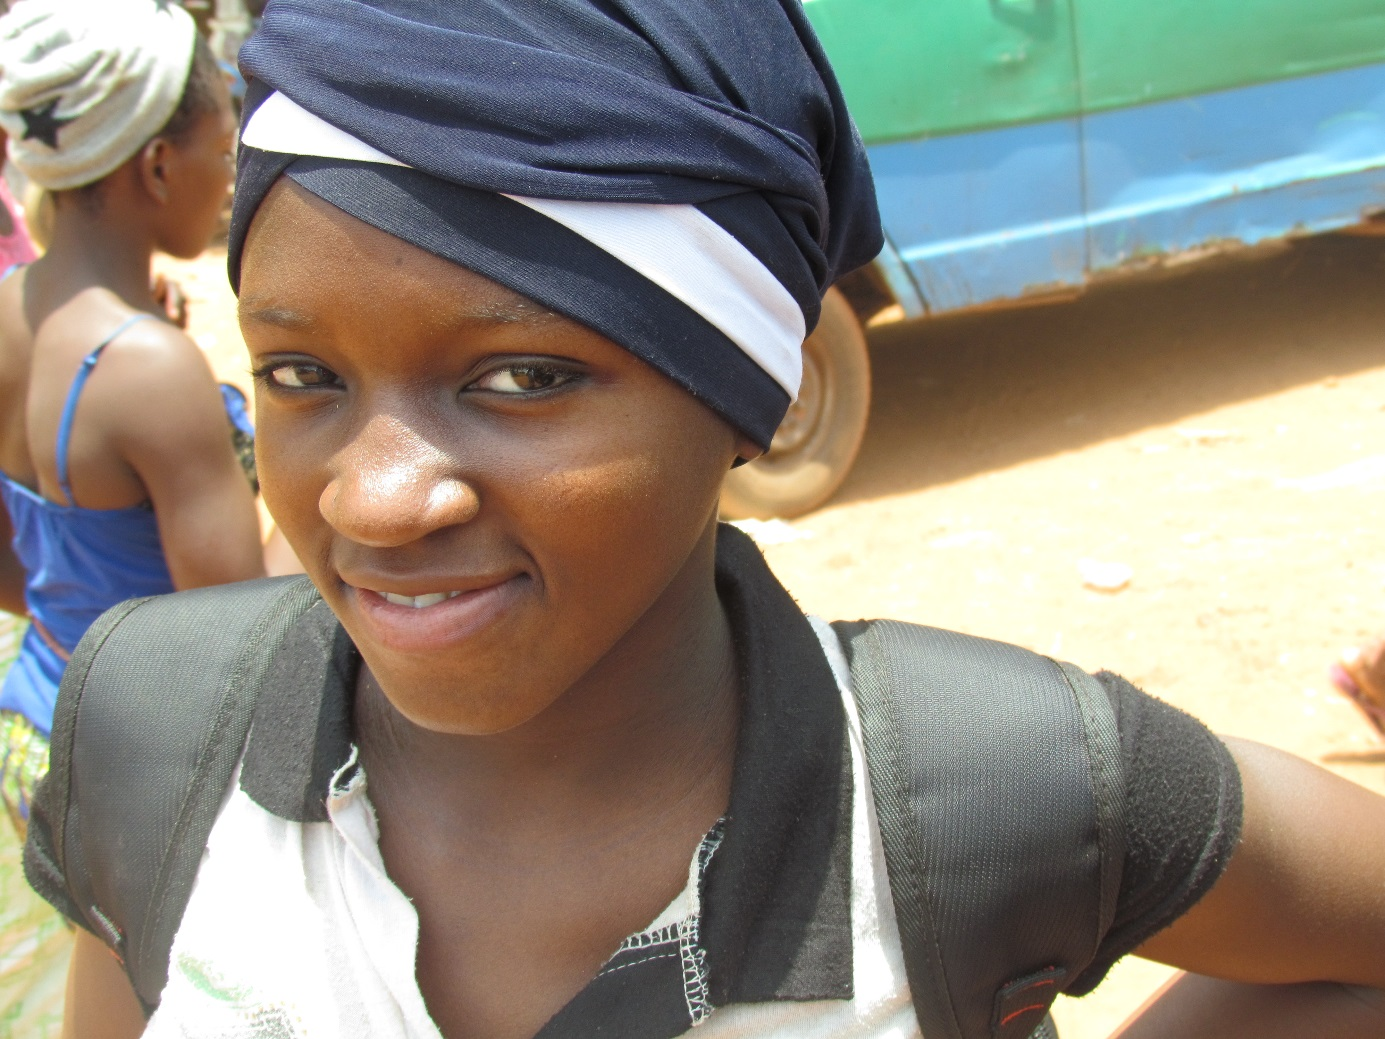 Fatoumata walks 10 to 20 miles a day for the honor of an education.